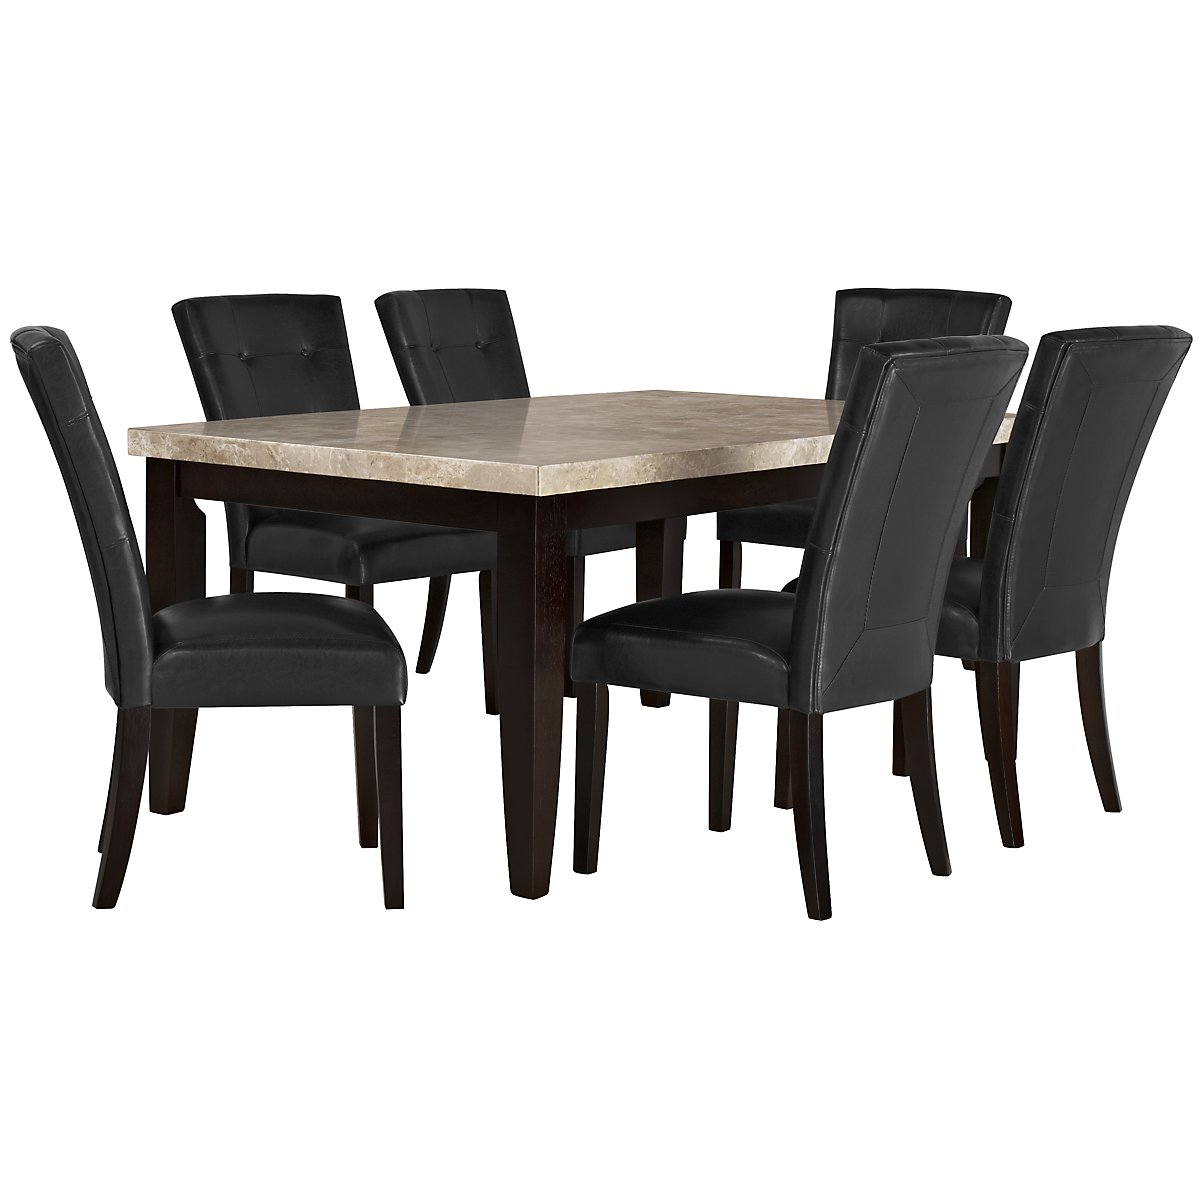 Monark Rectangular Marble Table & 4 Upholstered Chairs